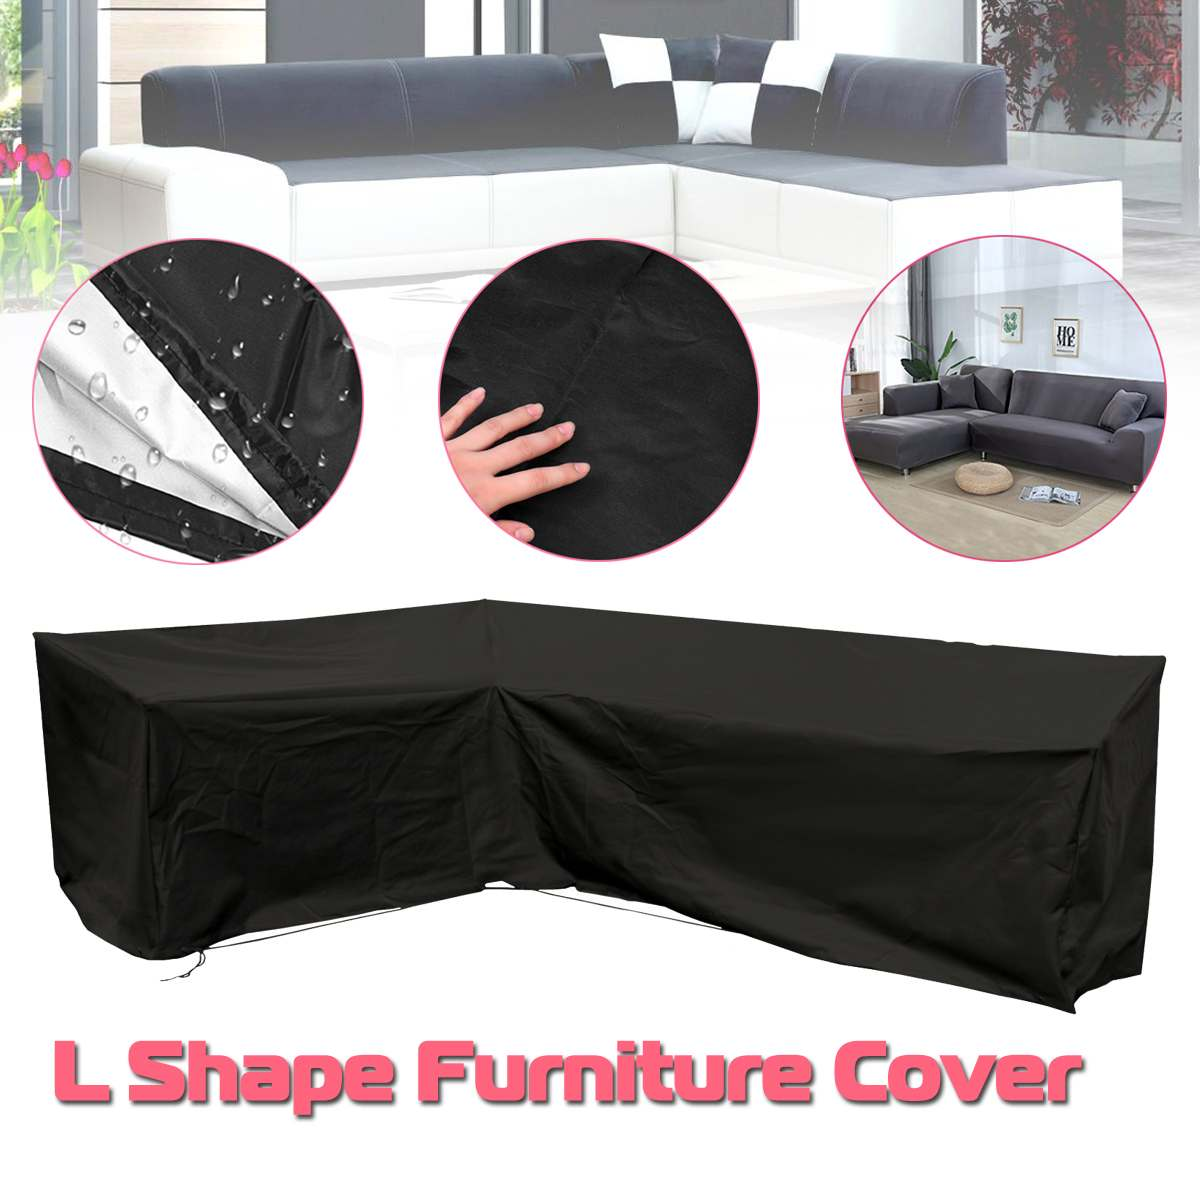 Waterproof Outdoor Patio Garden L Shape Furniture Covers Rain Snow Chair Covers For Sofa Table Chair Dust Proof Cover